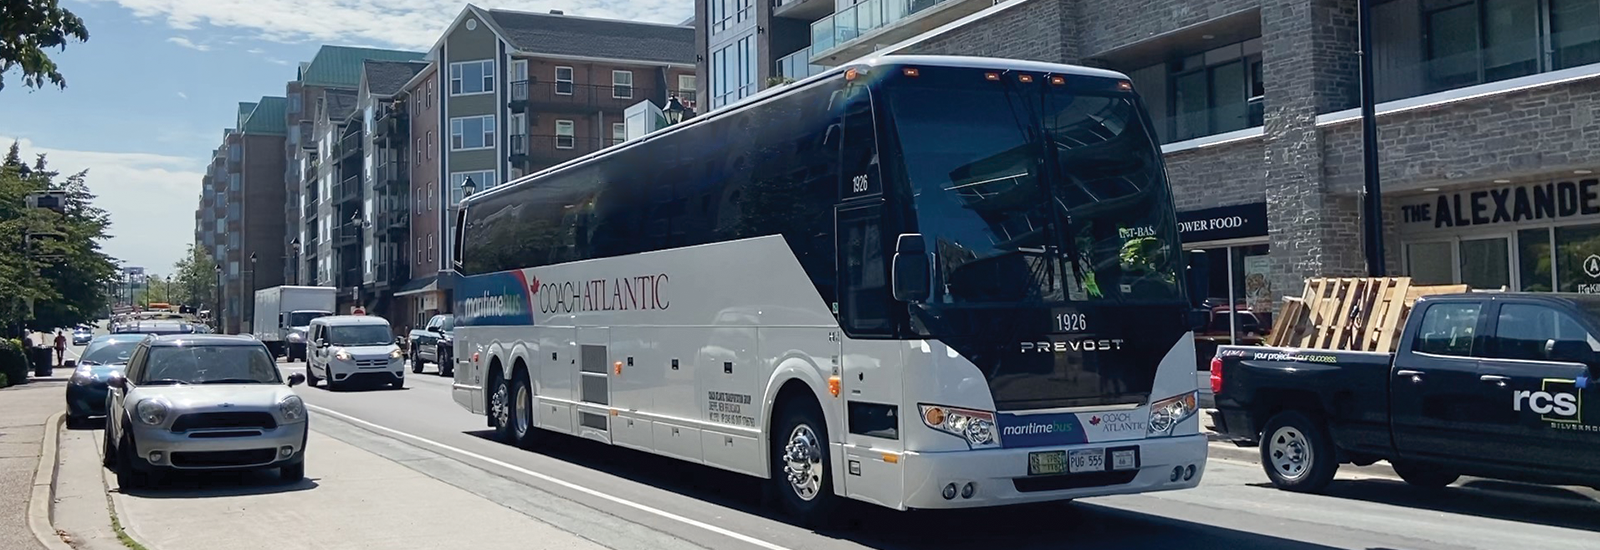 maritime bus downtown halifax